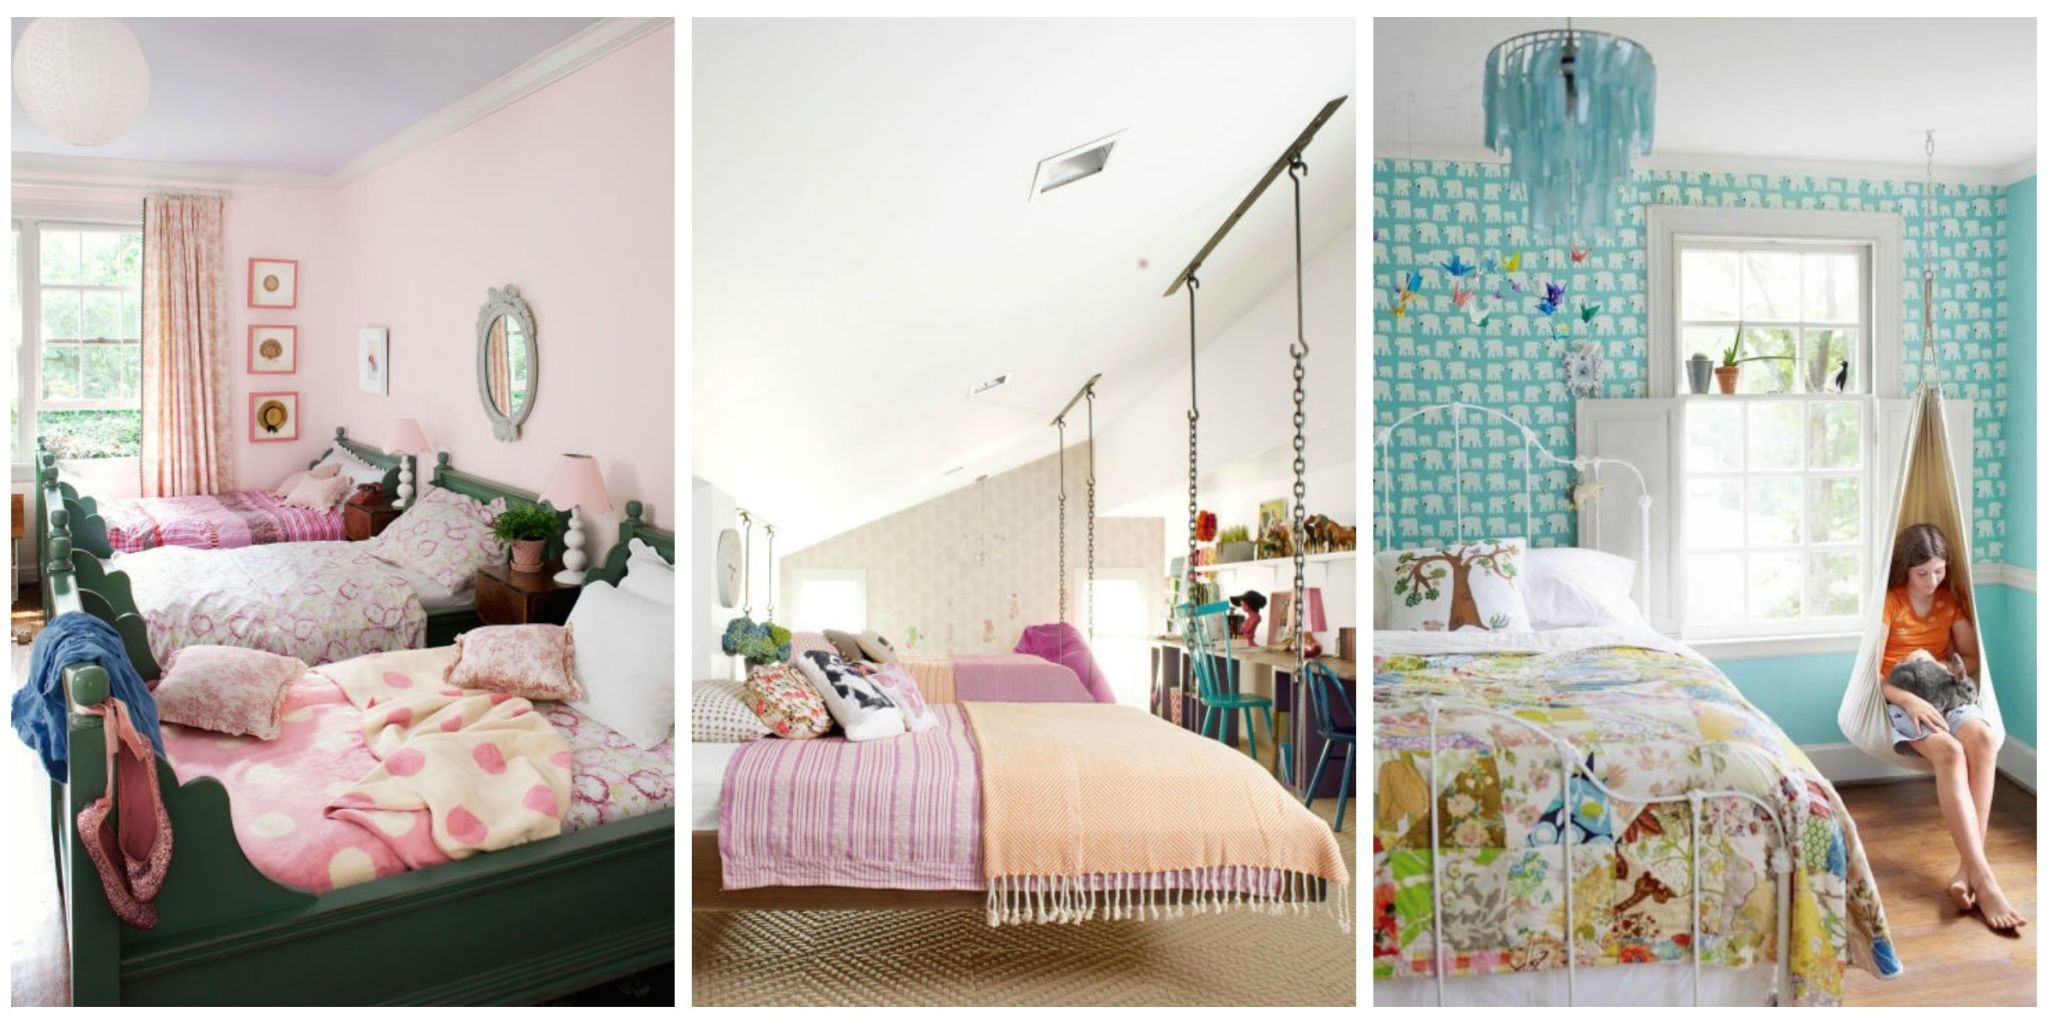 Bon Your Daughter Will Love A Room Filled With Color, Patterns, And Cute  Accessories! Click Through To Find Oh So Pretty Bedroom Decorating Ideas  For Girls Of ...